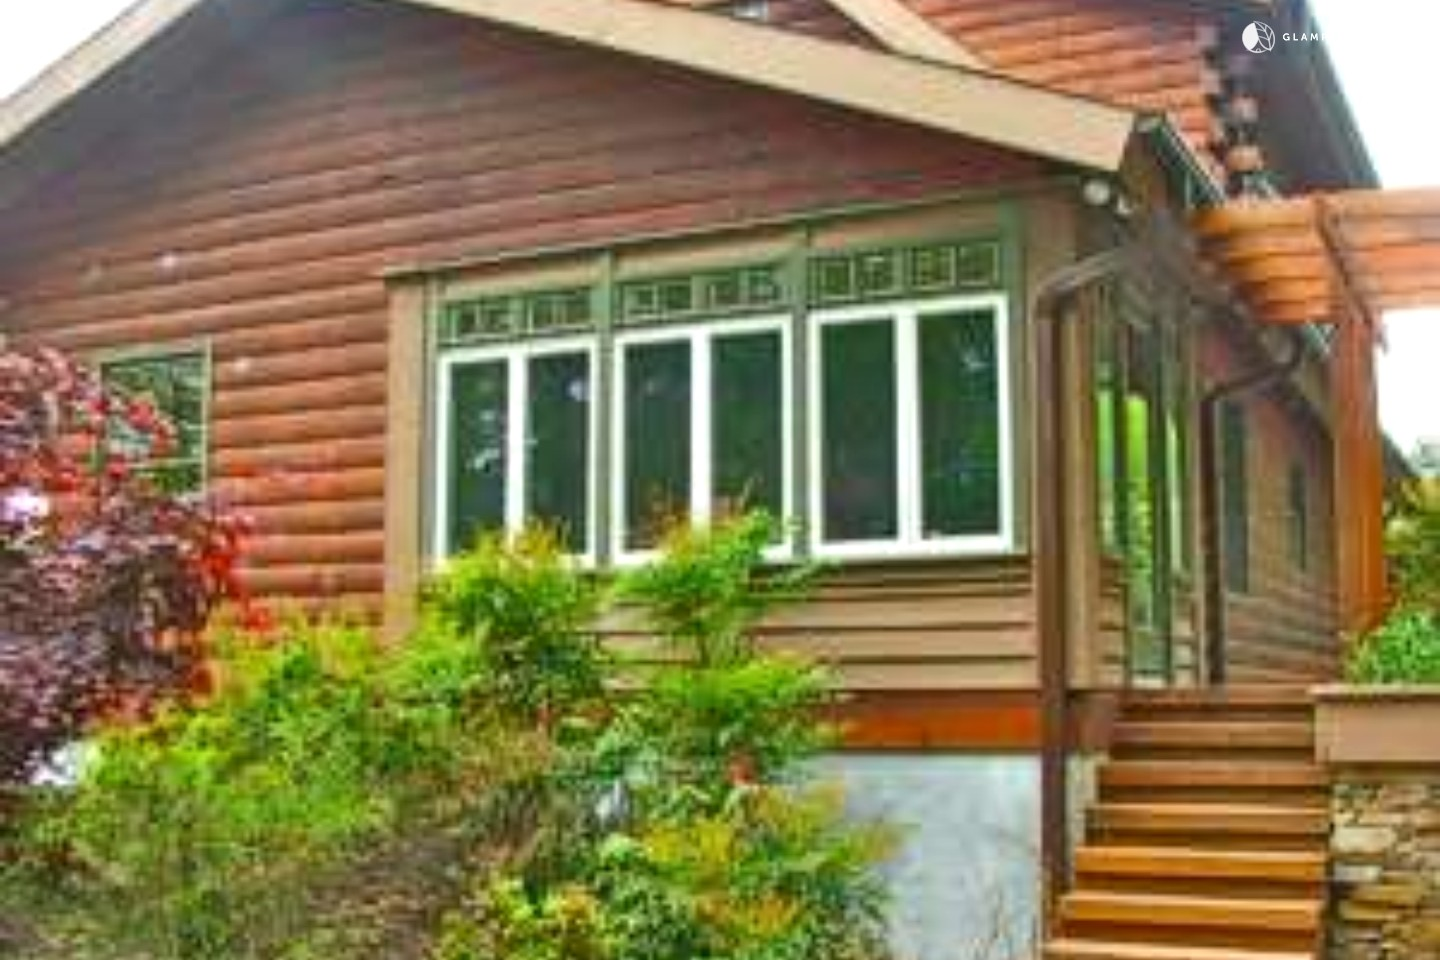 Cabin rental in asheville north carolina for Asheville nc luxury cabin rentals